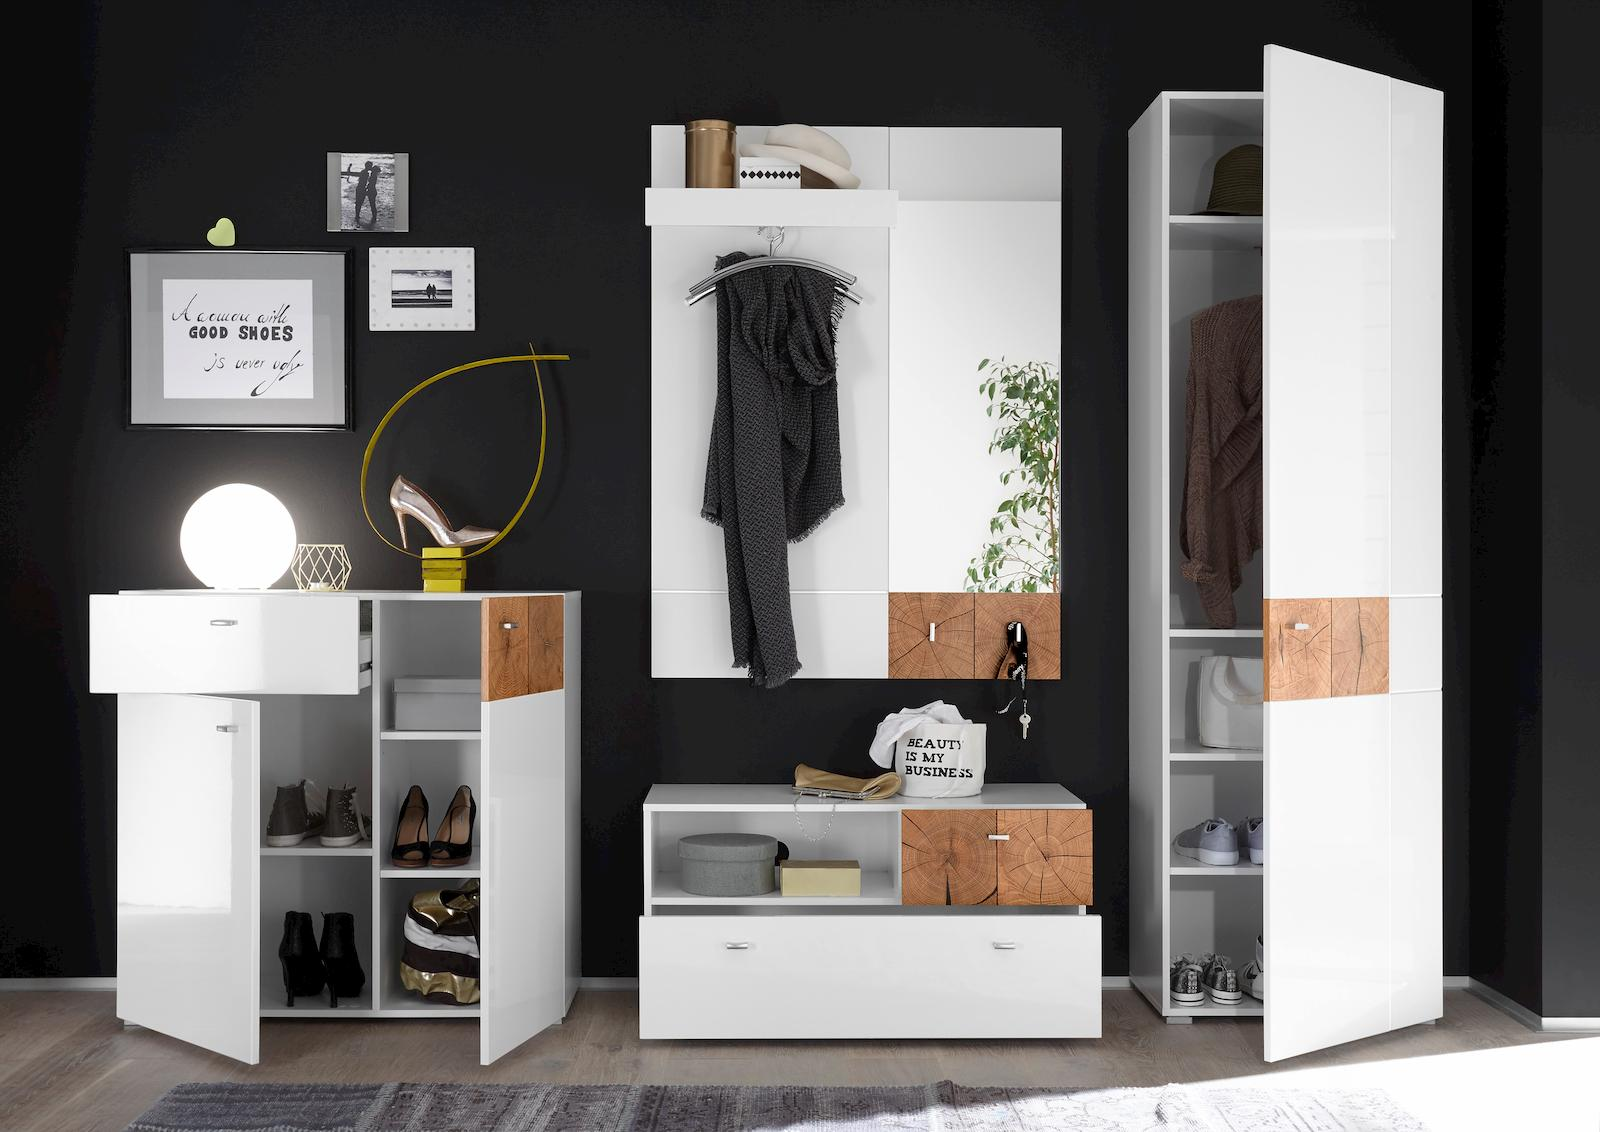 forest schuhbank bank sitzbank garderobe flur ablagebank. Black Bedroom Furniture Sets. Home Design Ideas